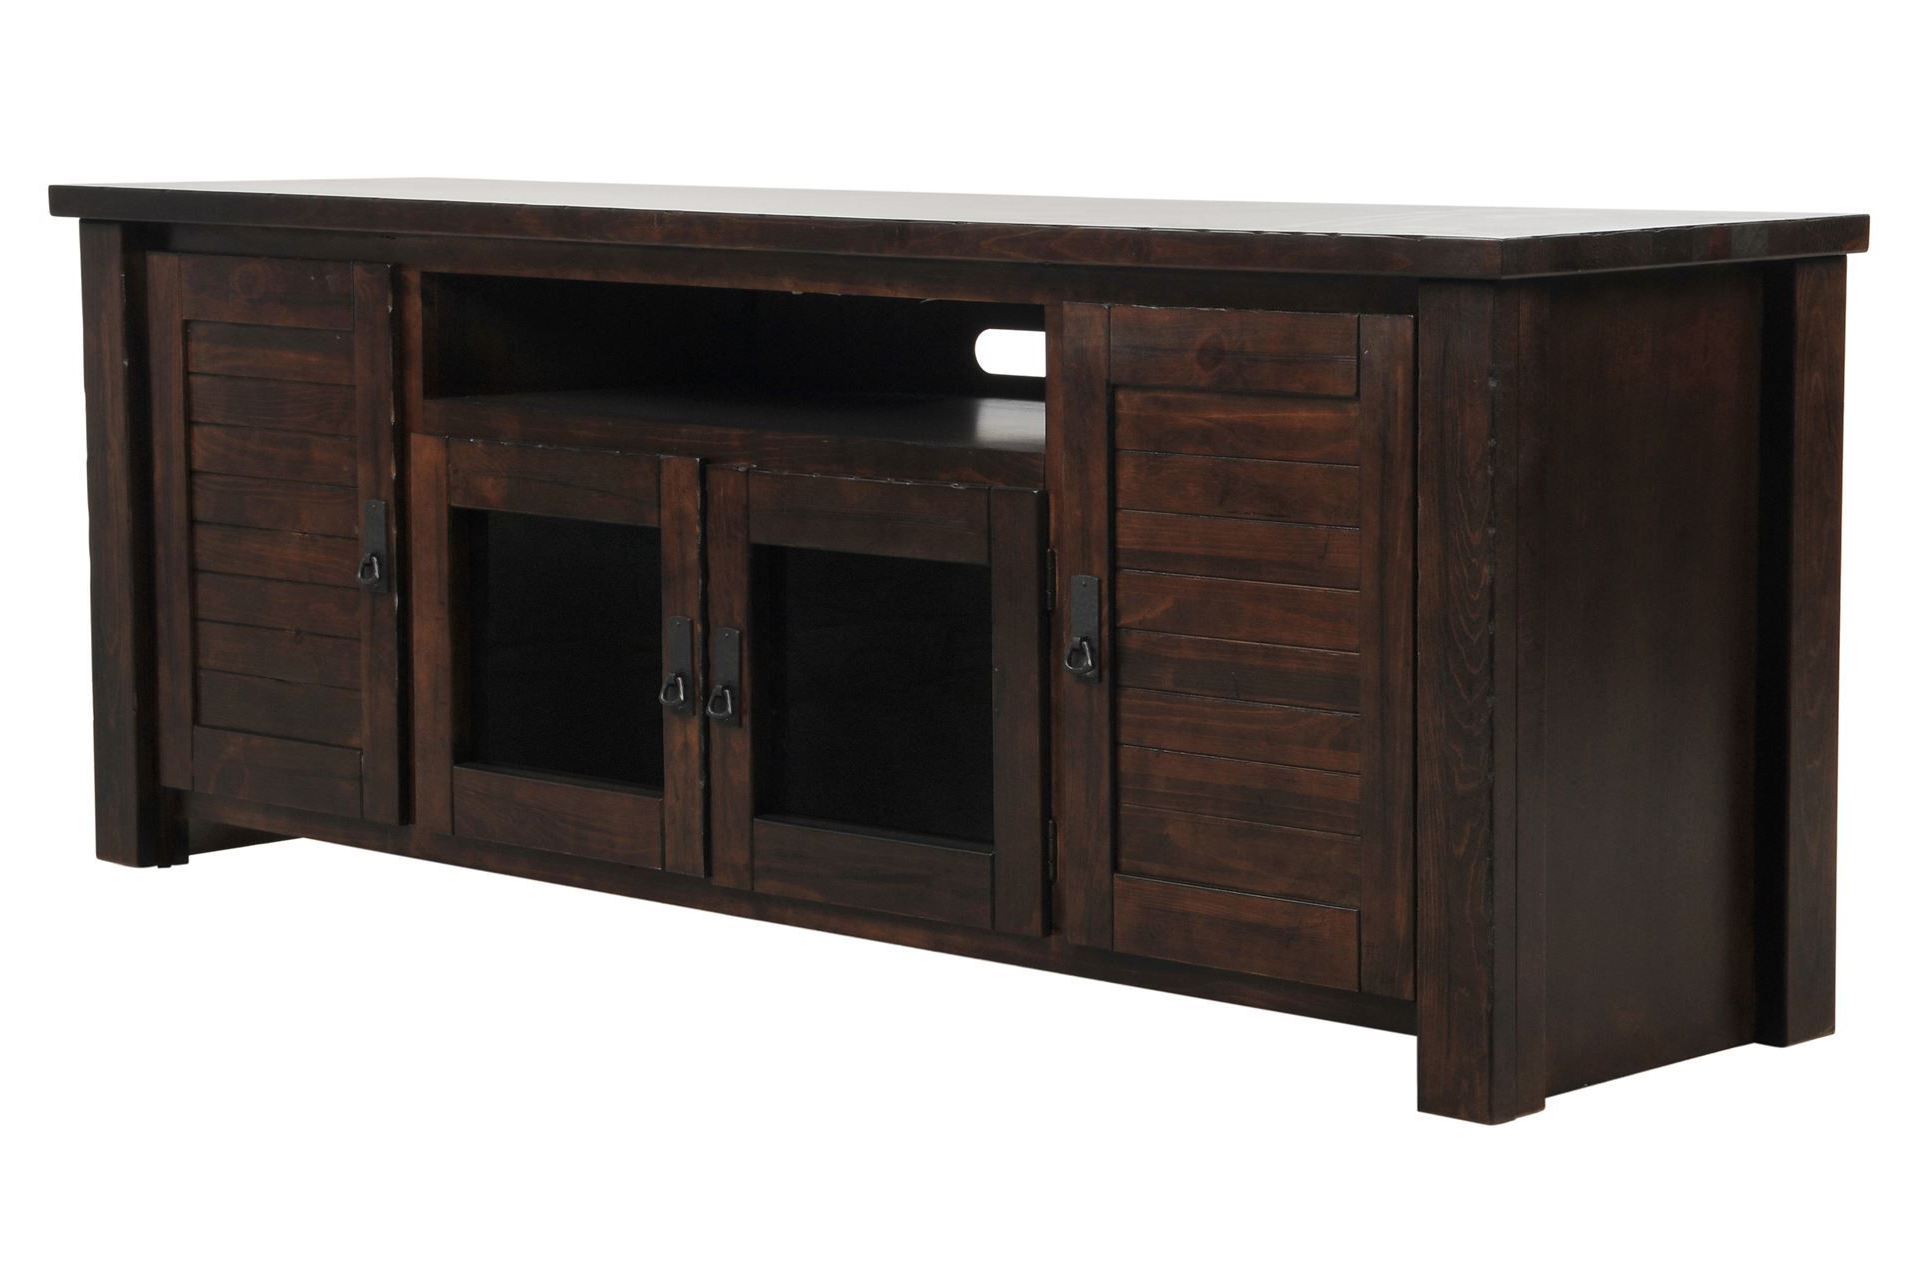 74 Inch Tv Stand, Canyon, Brown | Consoles, Living Rooms And Men Cave For Sinclair White 54 Inch Tv Stands (View 8 of 20)